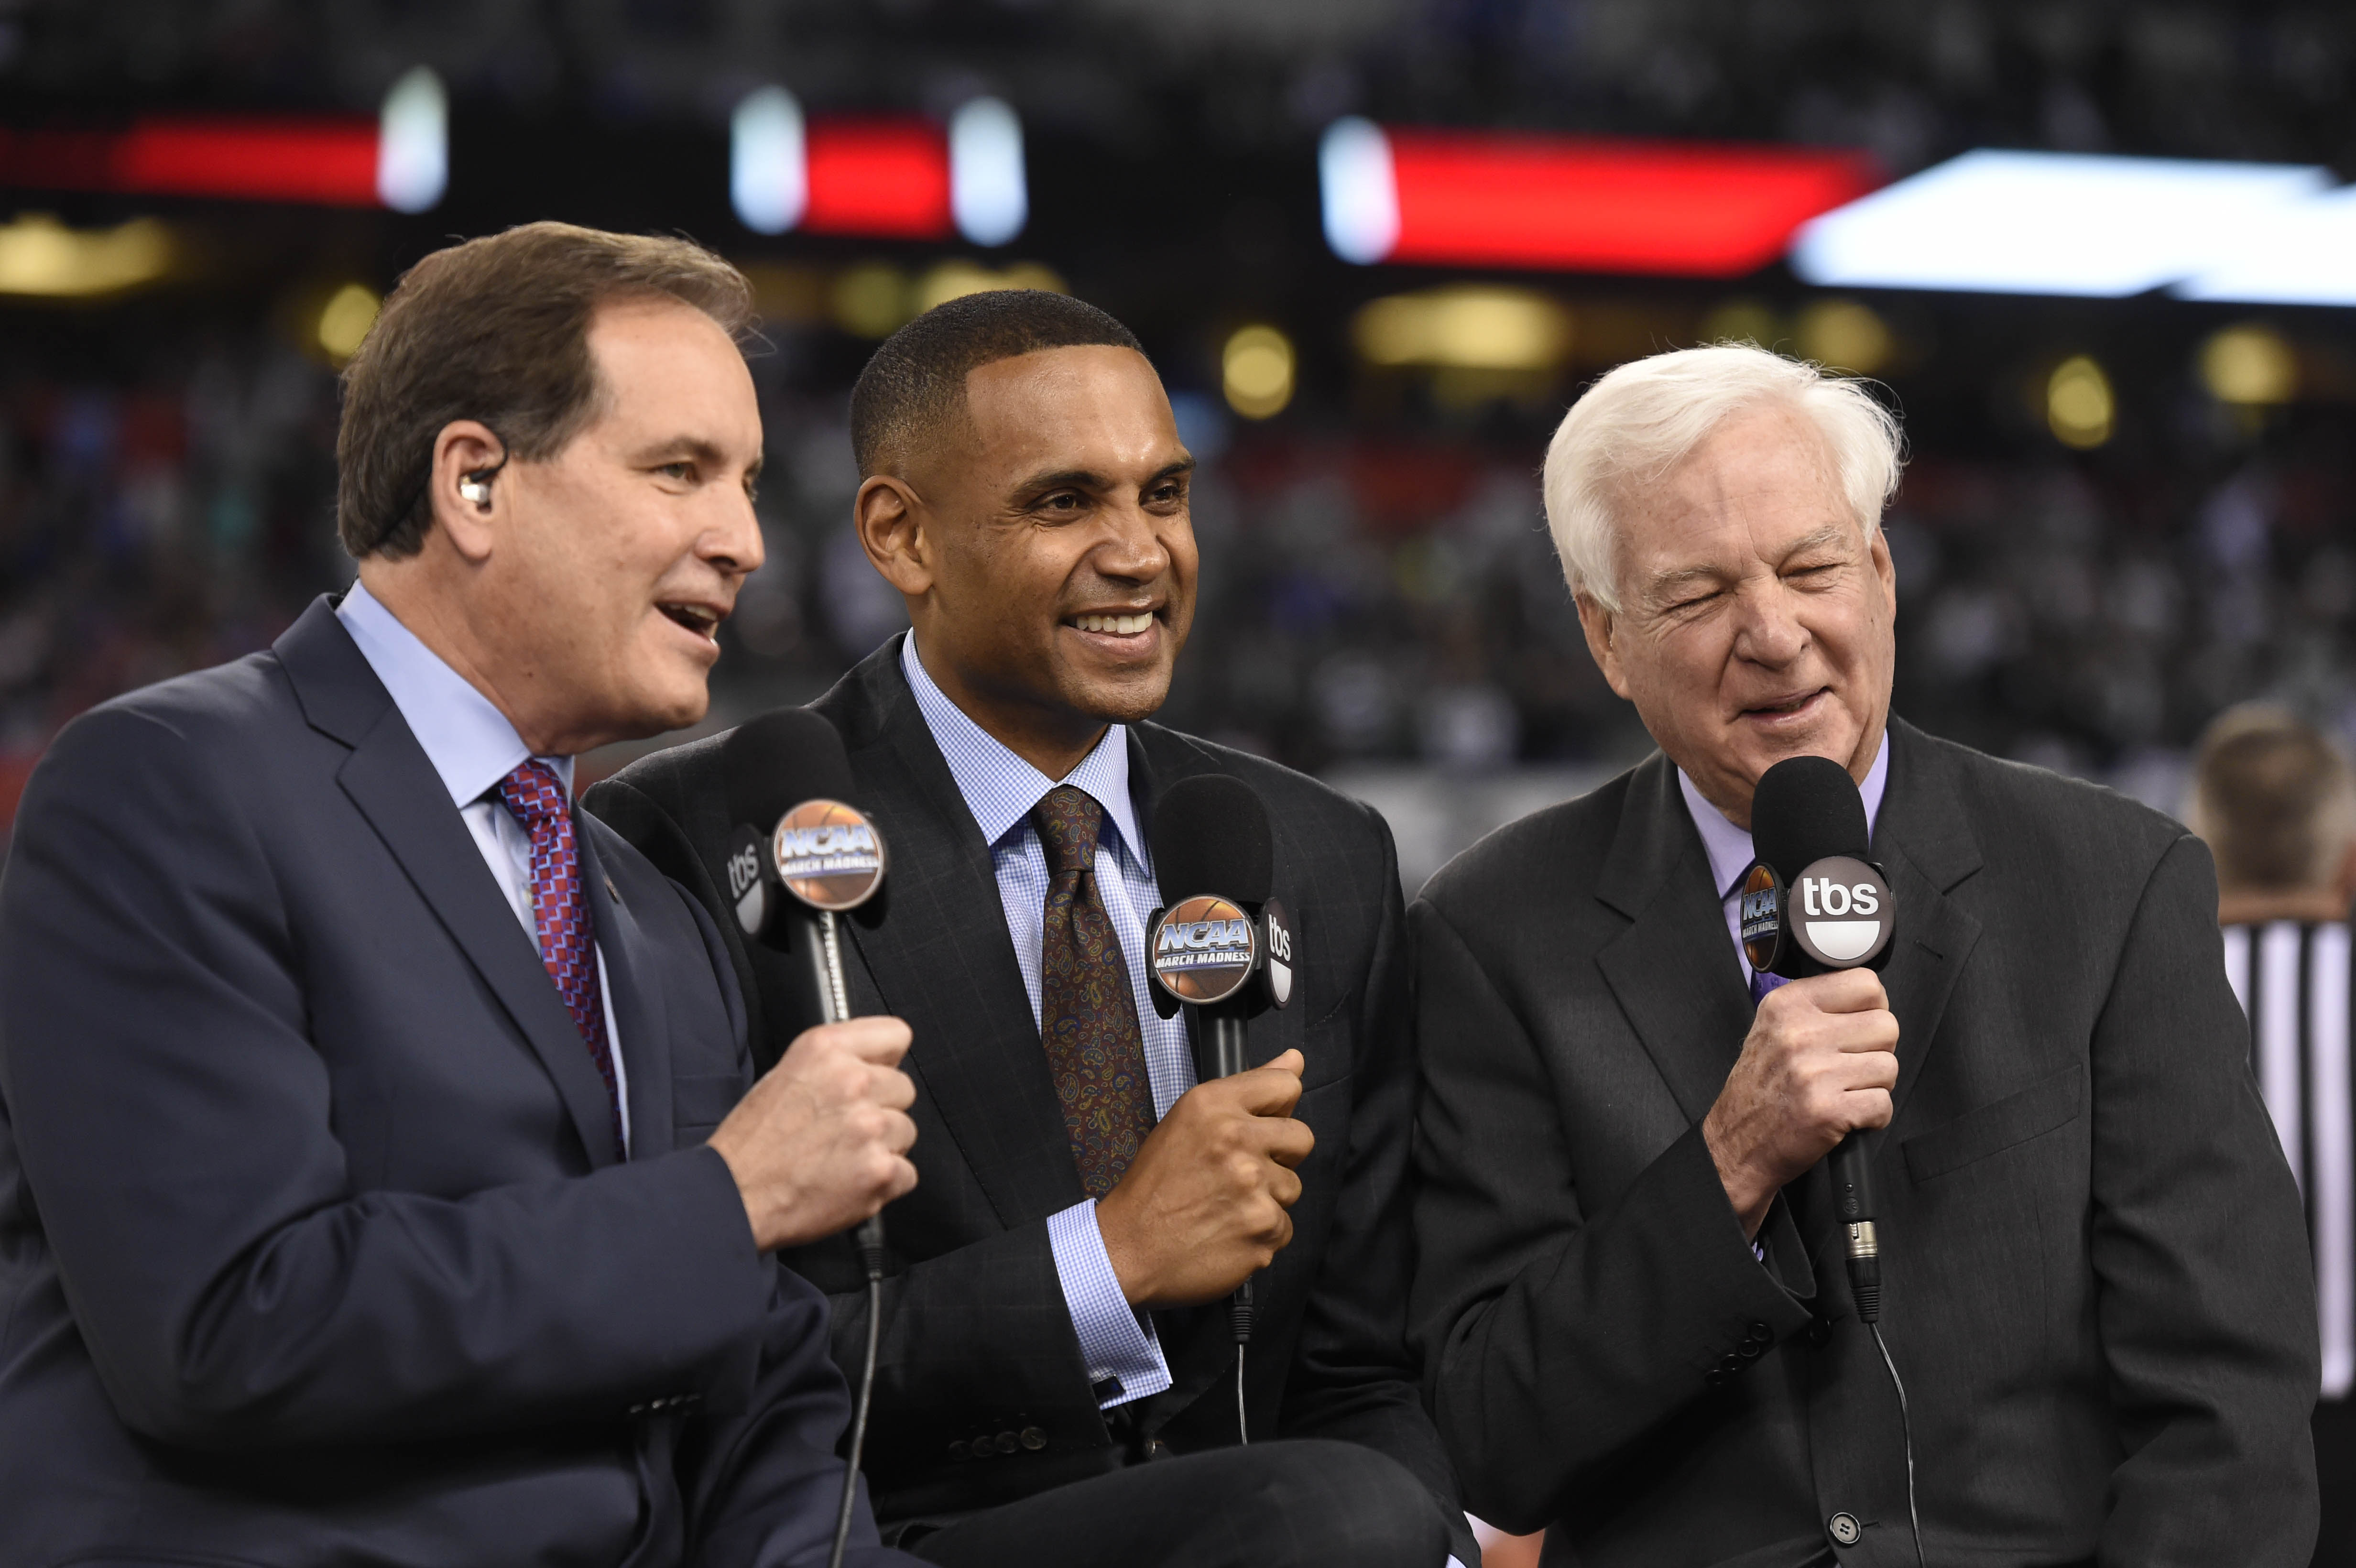 Why can Raftery call games but Gus can't?